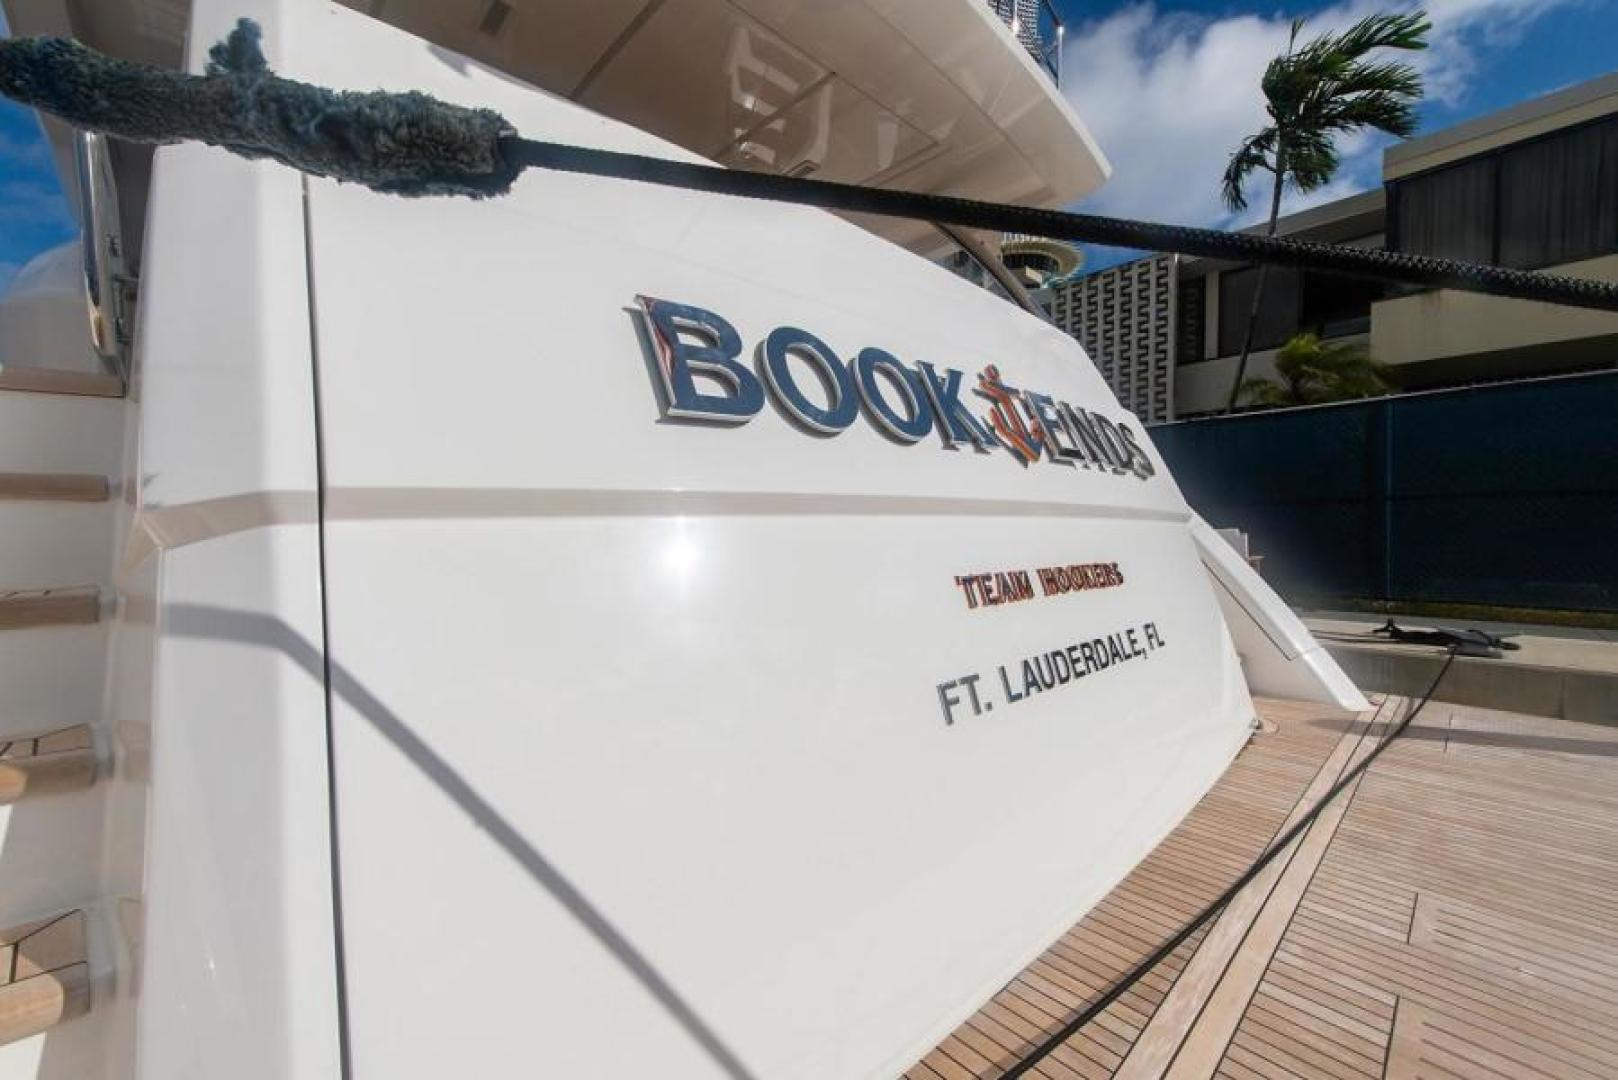 Viking-Motoryacht Enclosed Flybridge 2018-BOOK ENDS Fort Lauderdale-Florida-United States-Swim Platform-1470666 | Thumbnail